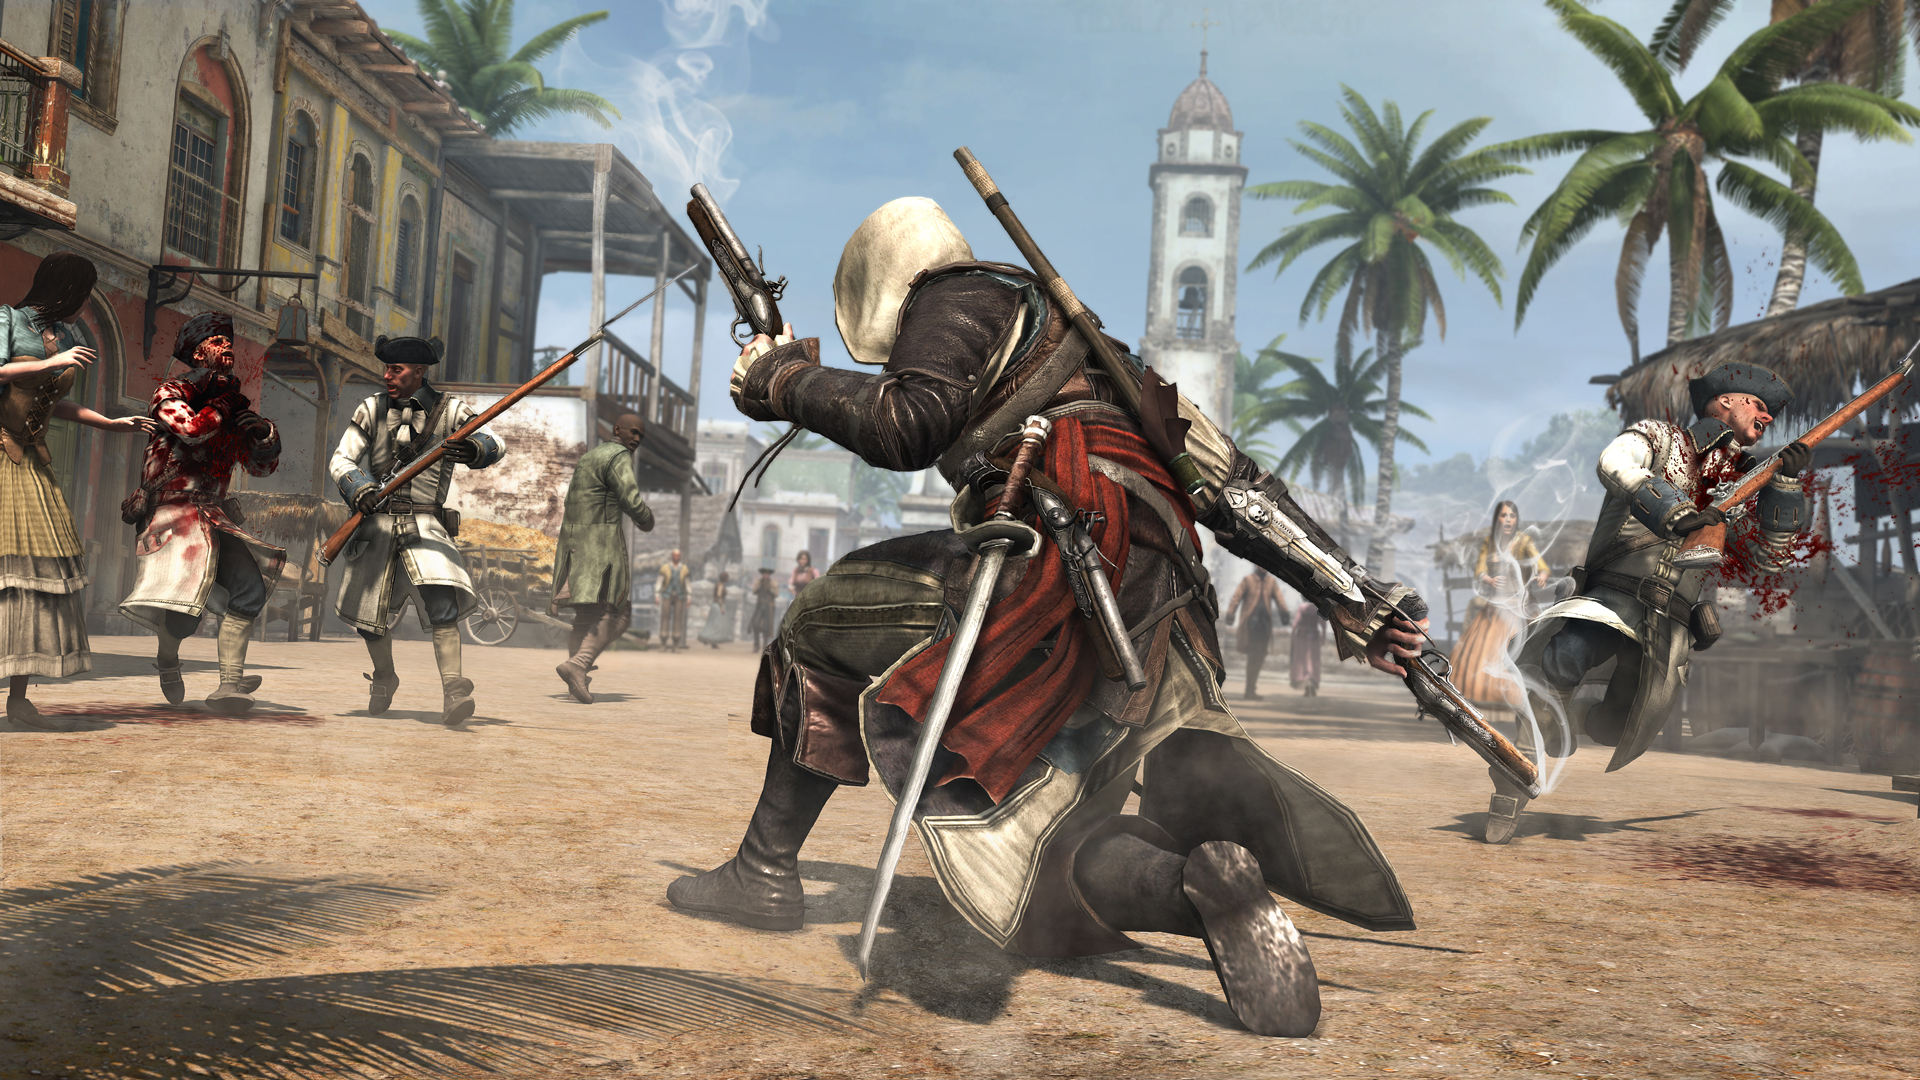 Image blackflag promo 2g assassins creed wiki fandom thumbnail for version as of 2304 march 9 2013 voltagebd Images